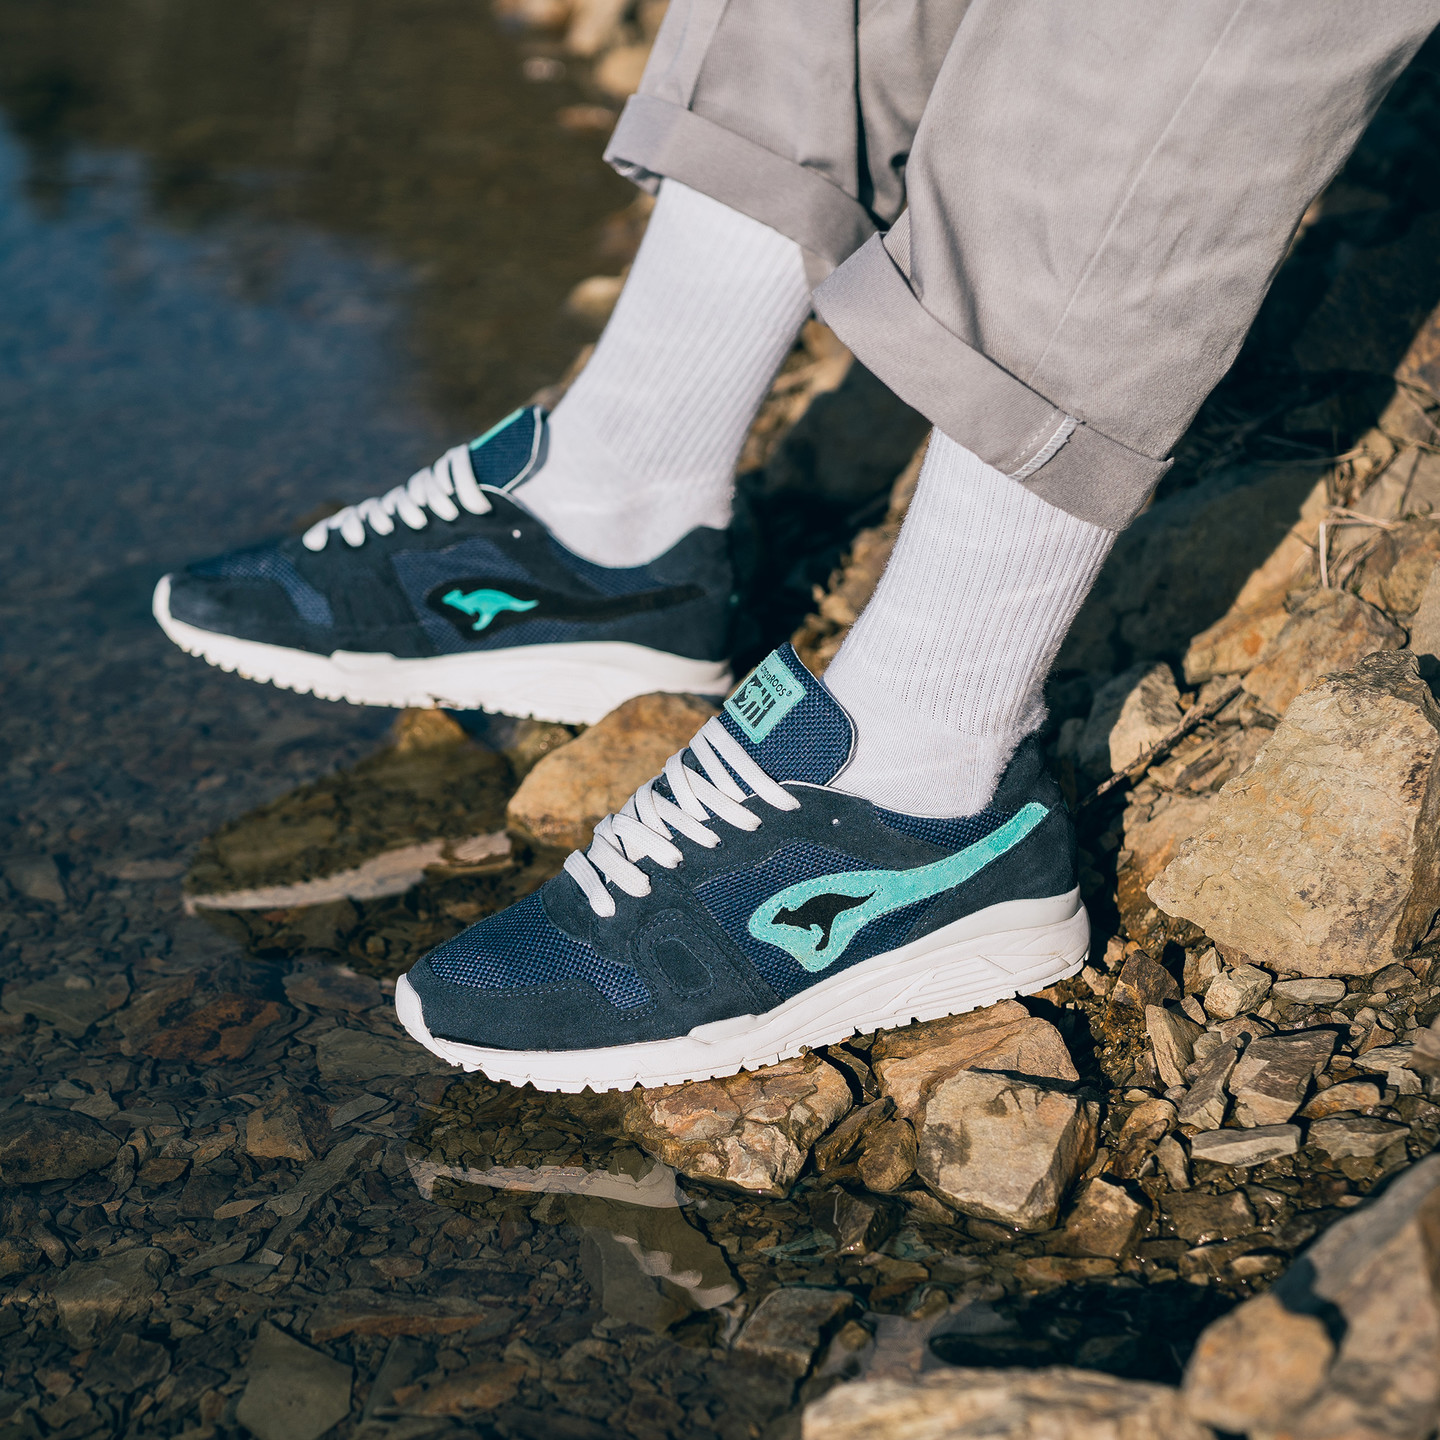 KangaROOS Omnirun x Bracenet 'Ocean 72' - Made in Germany Navy / Turquoise / White 47020 000 4406